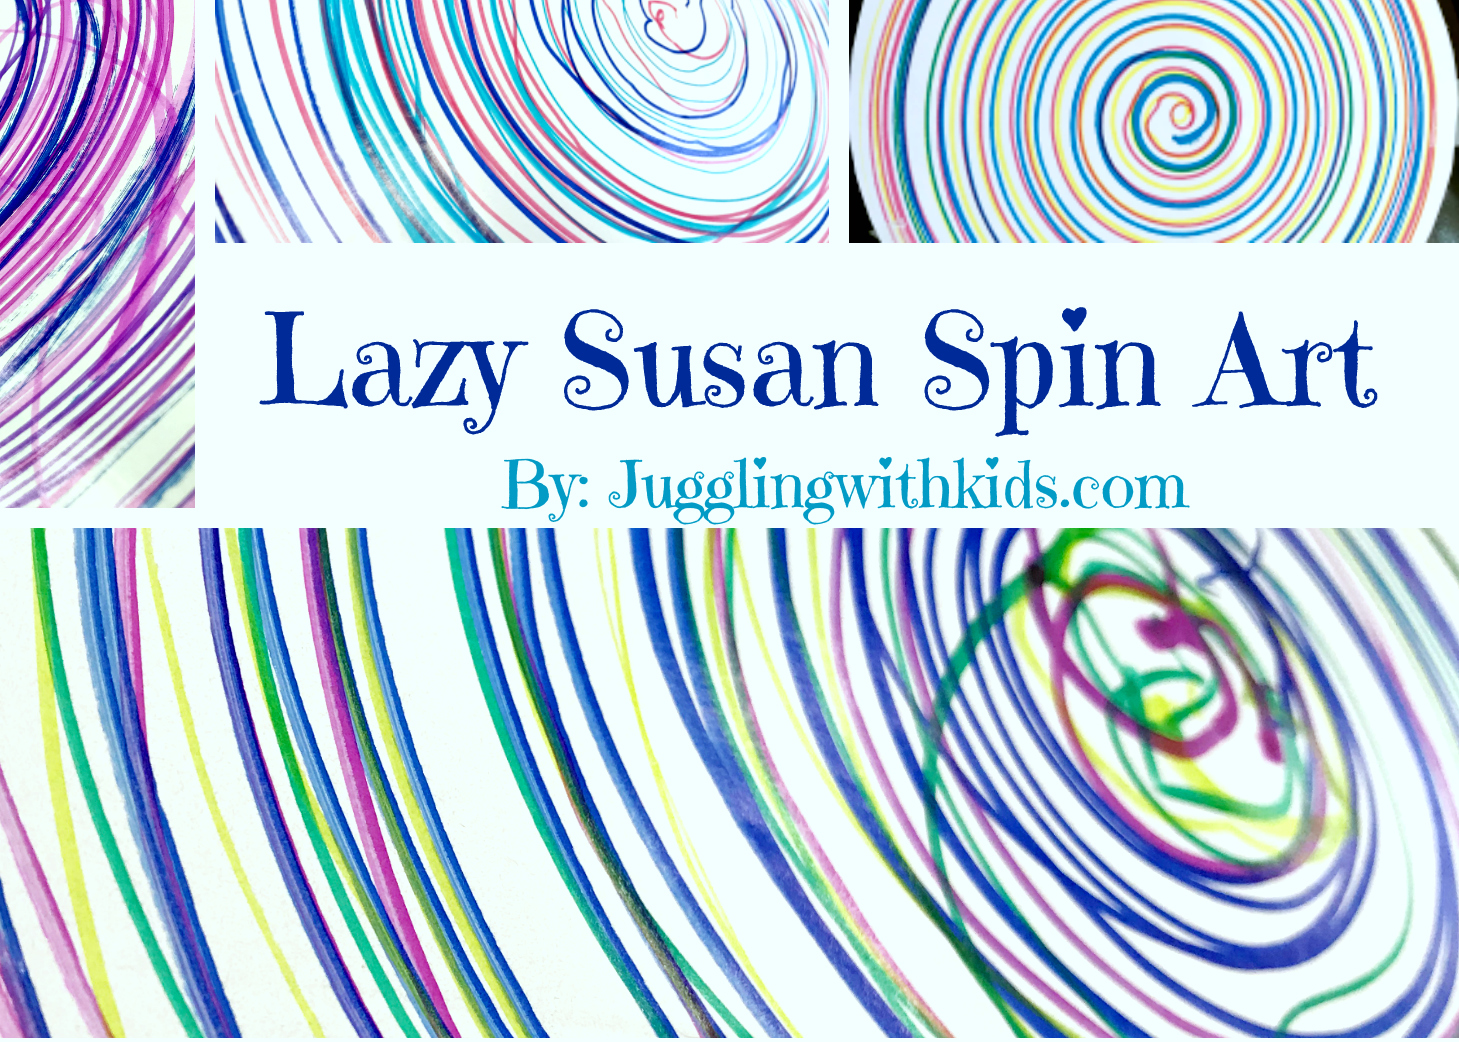 Lazy Susan Spin Art Juggling With Kids